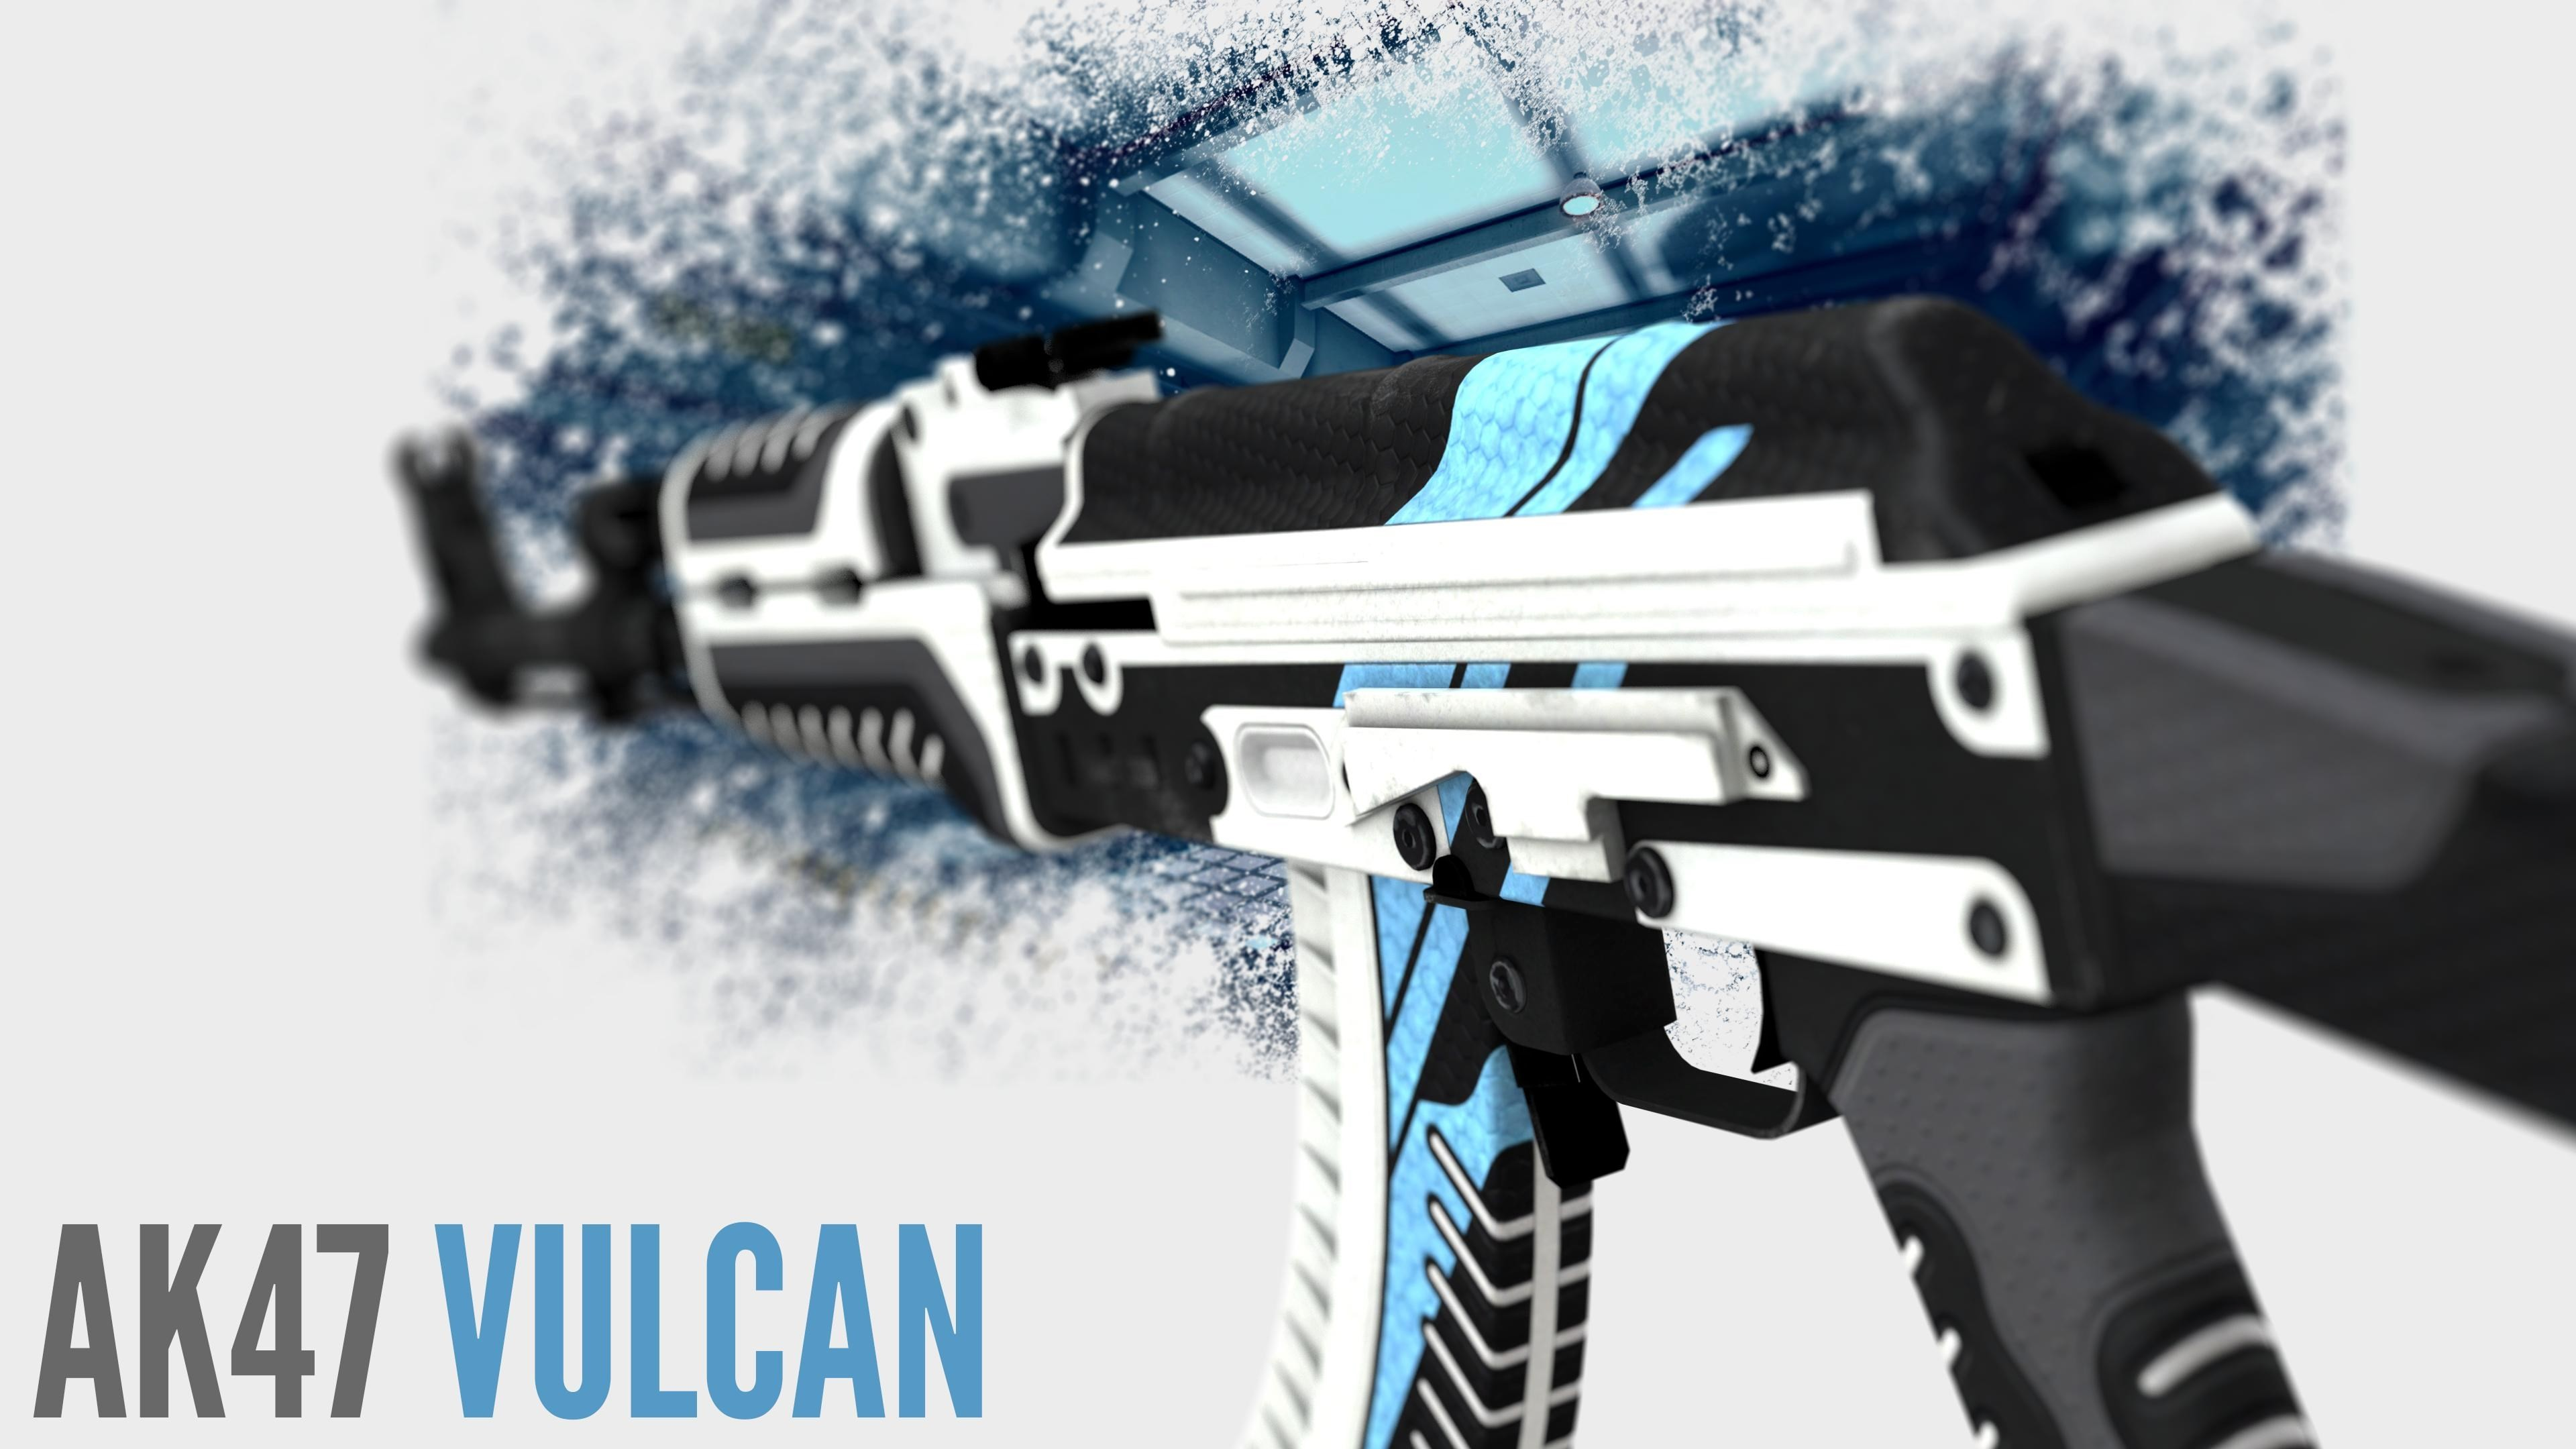 ak47 vulcan wallpaper